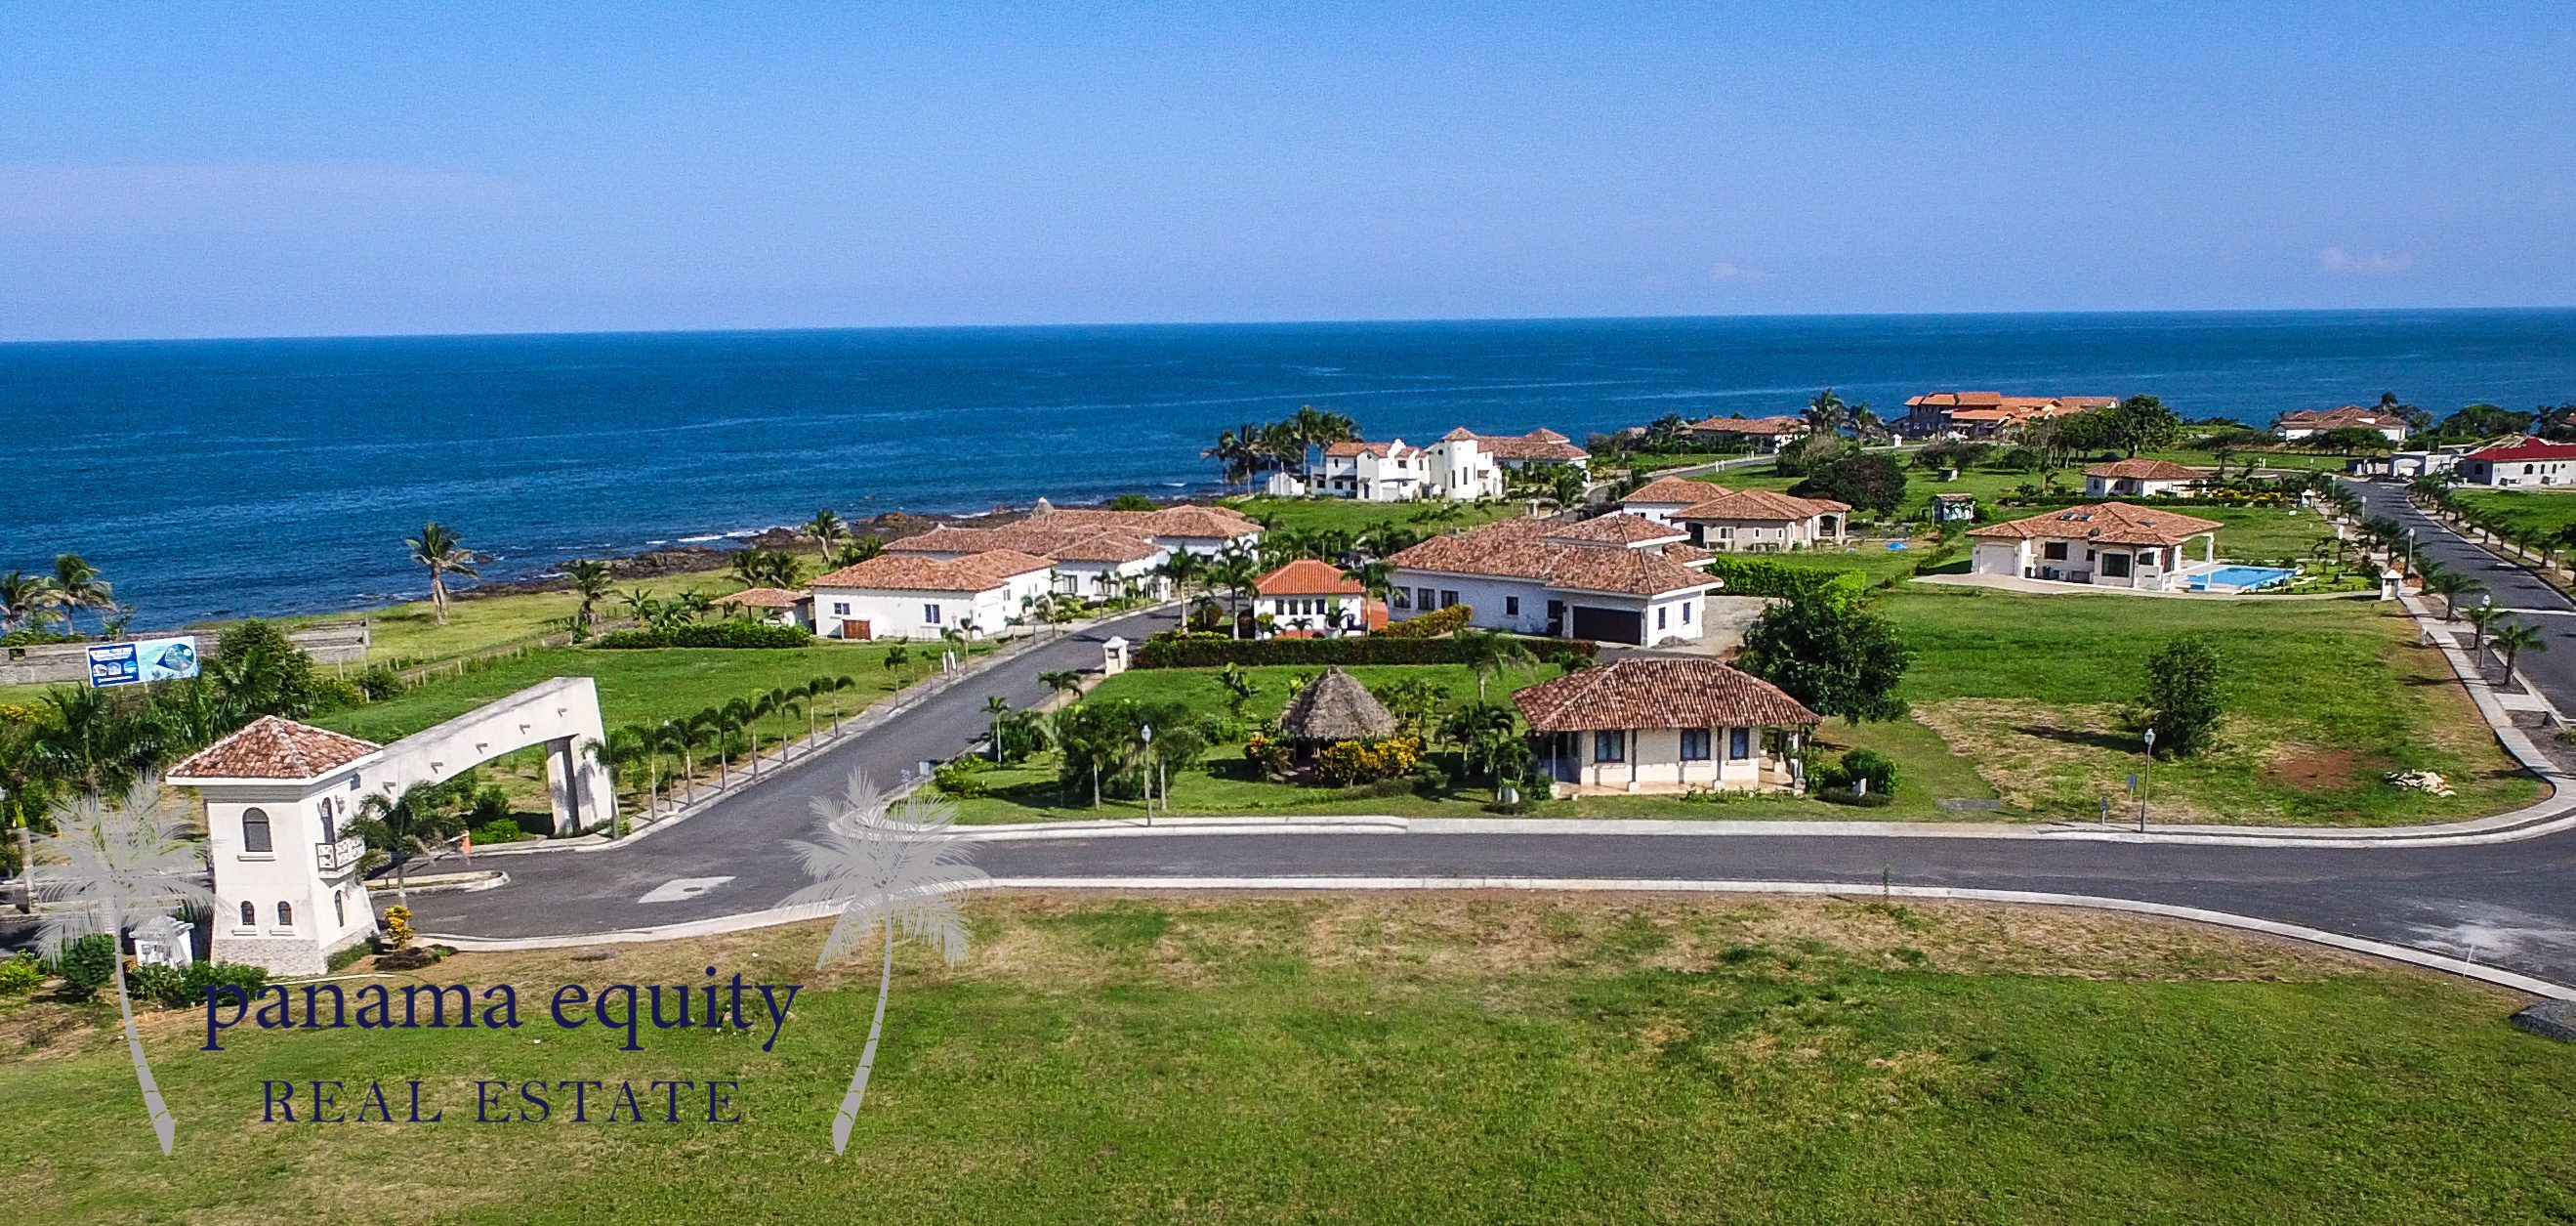 Walk to the Beach: Costa Pedasí Ocean View Lots From $59K